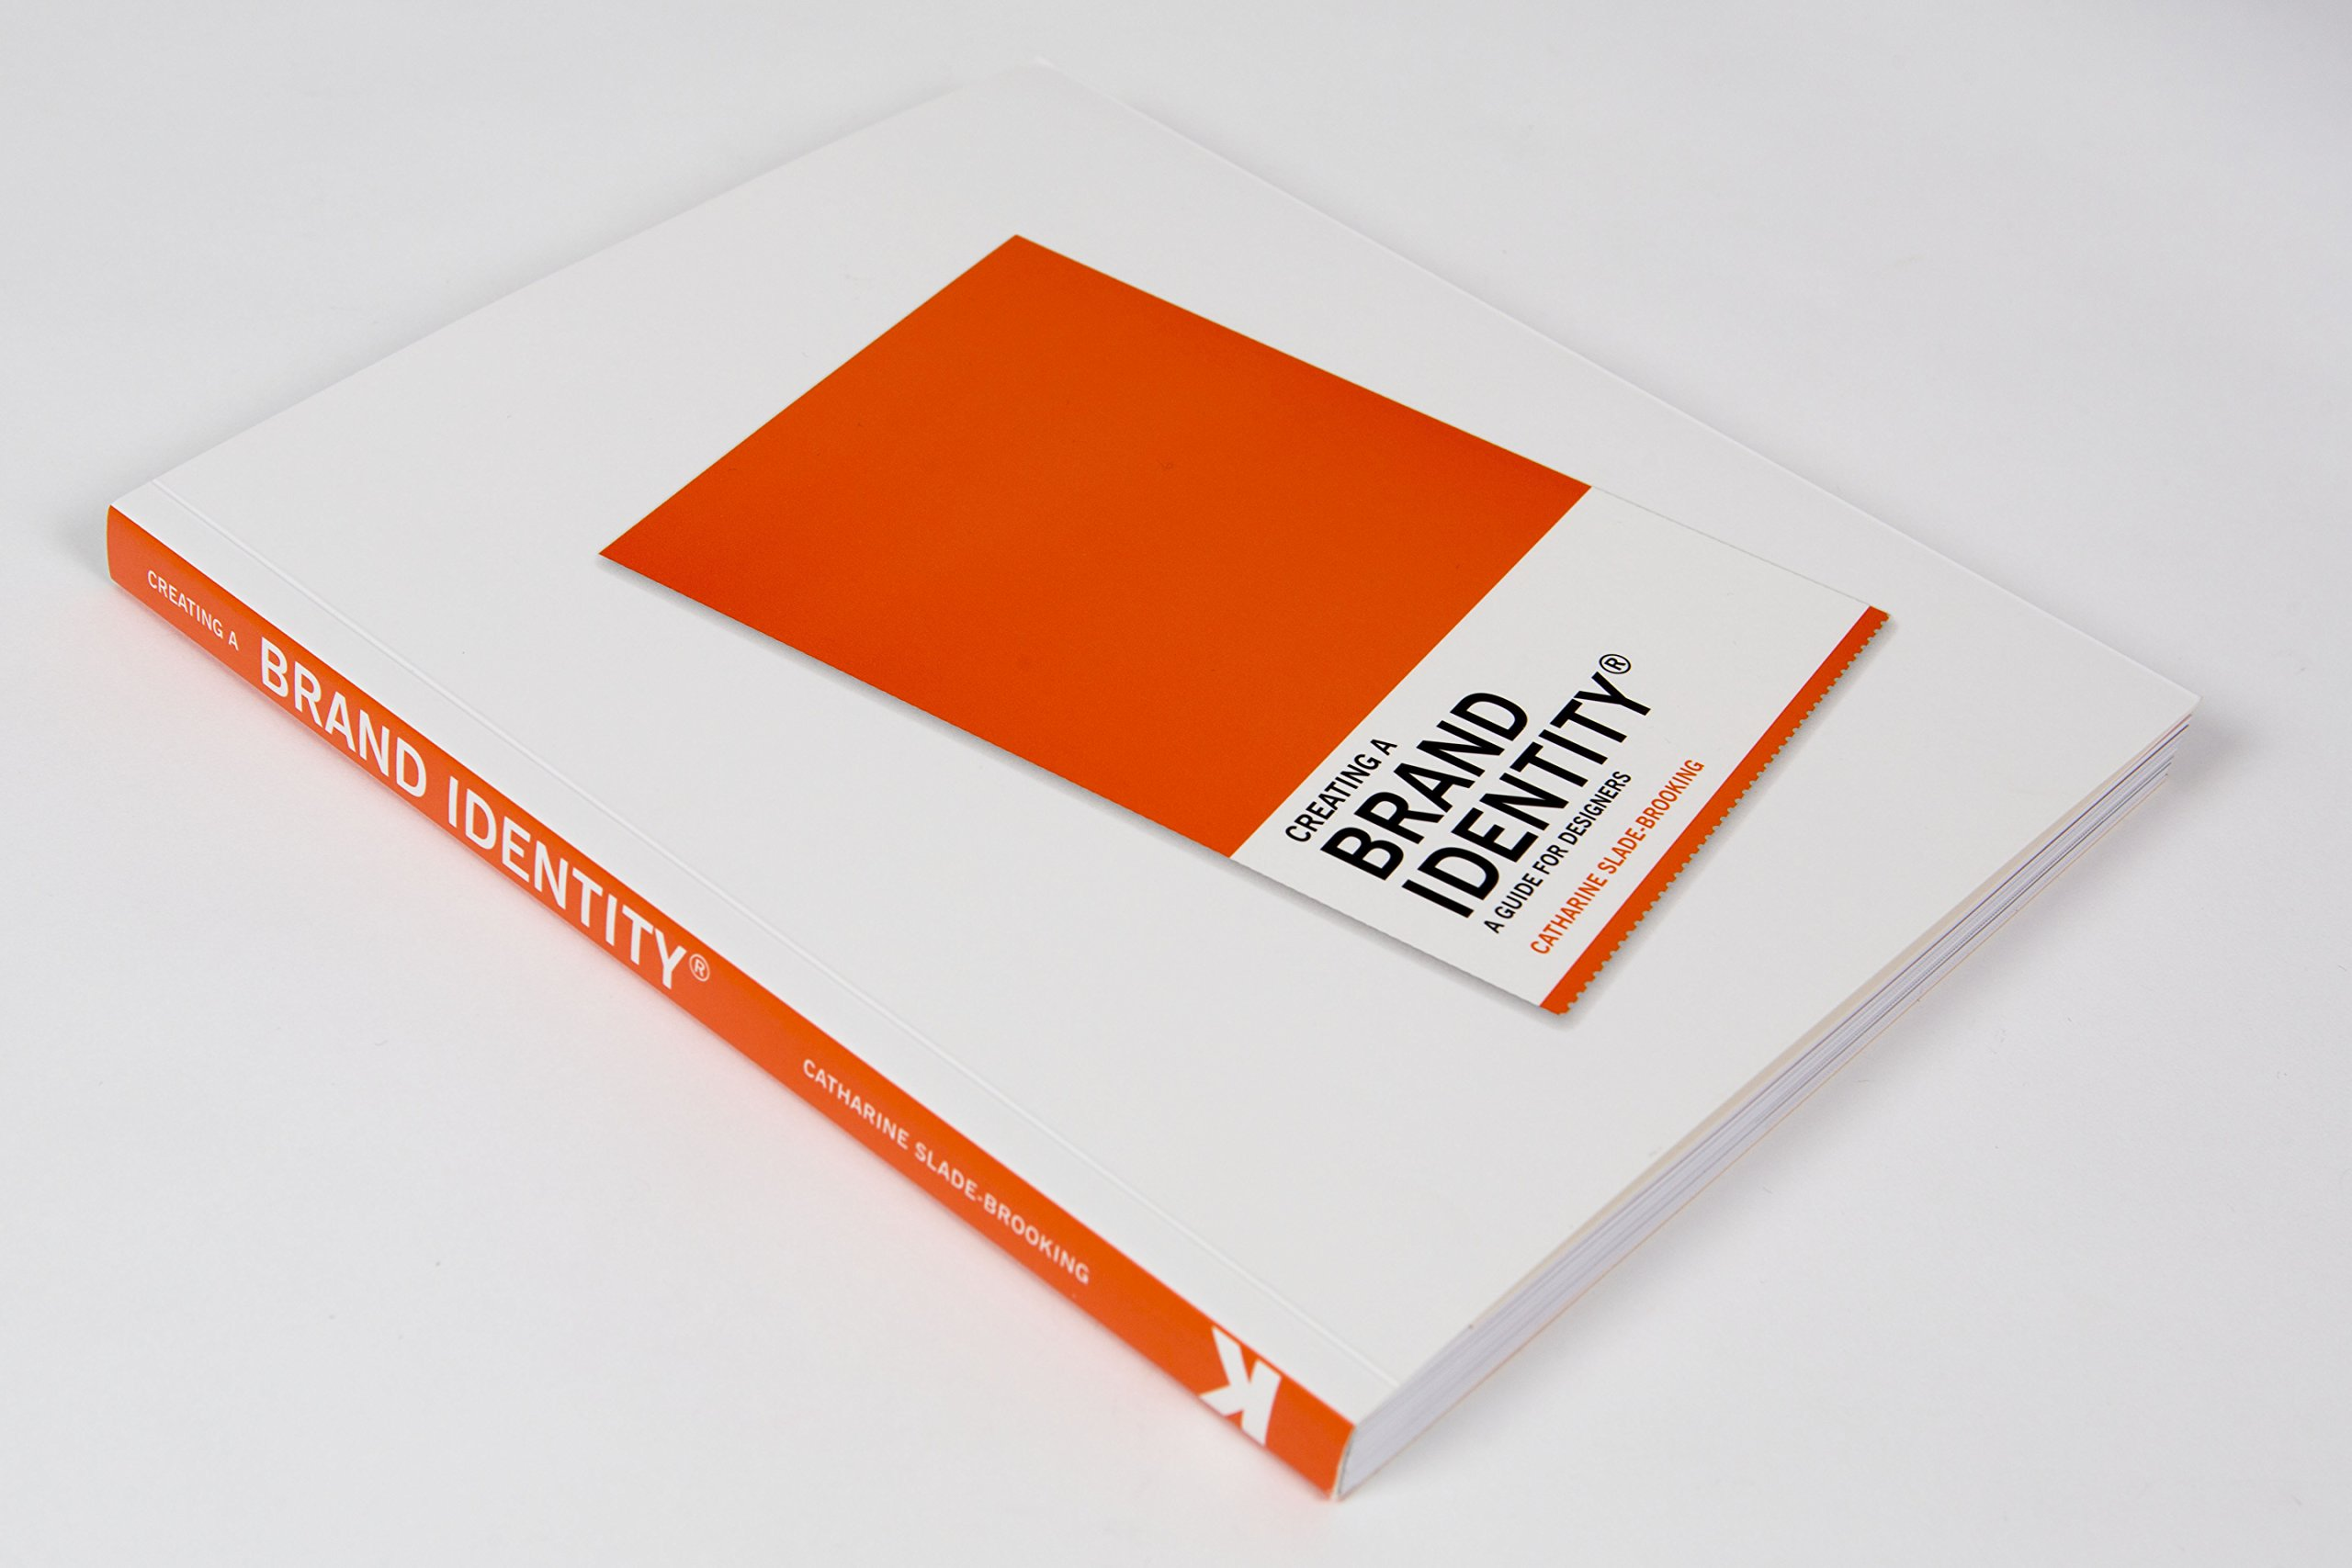 Creating-Brand-Identity-a-guide-for-designers